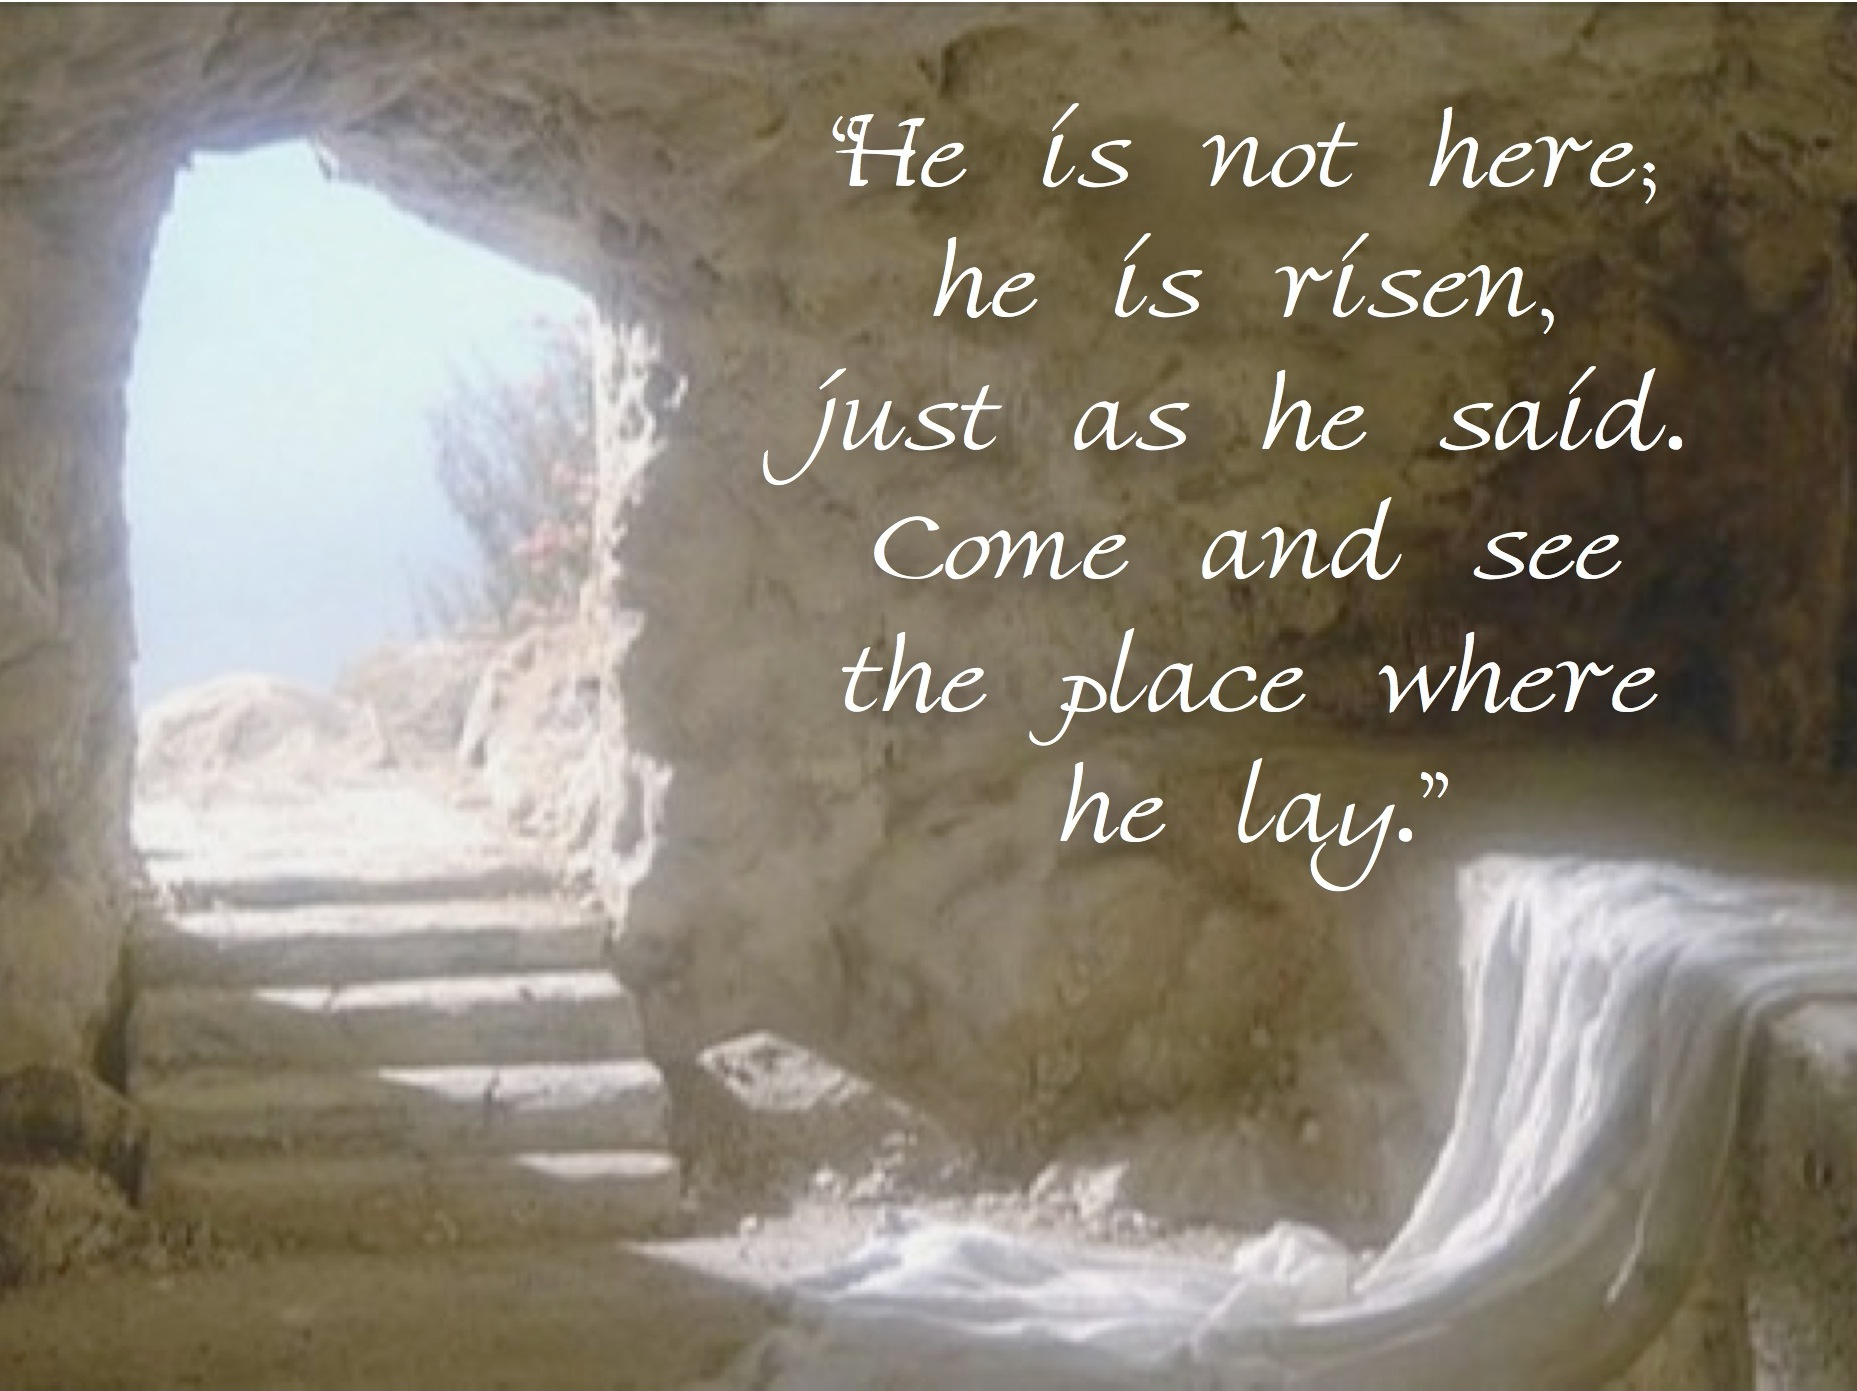 This is the Tomb